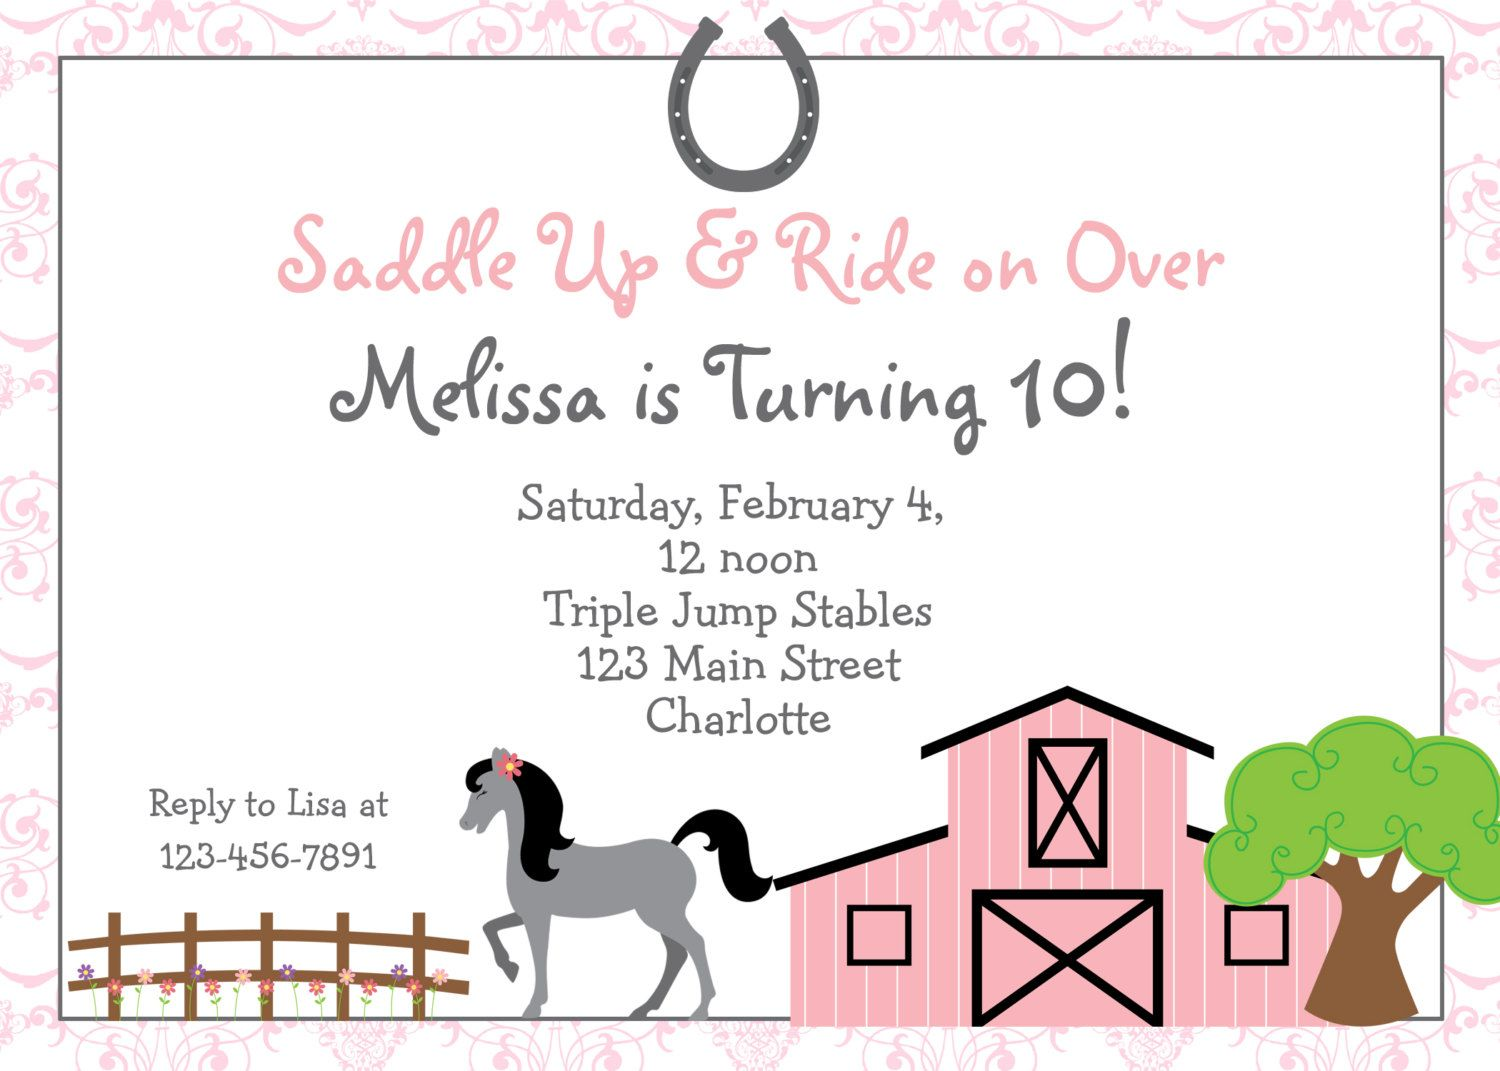 printable horse riding party invitations birthday printable horse riding party invitations birthday invitations